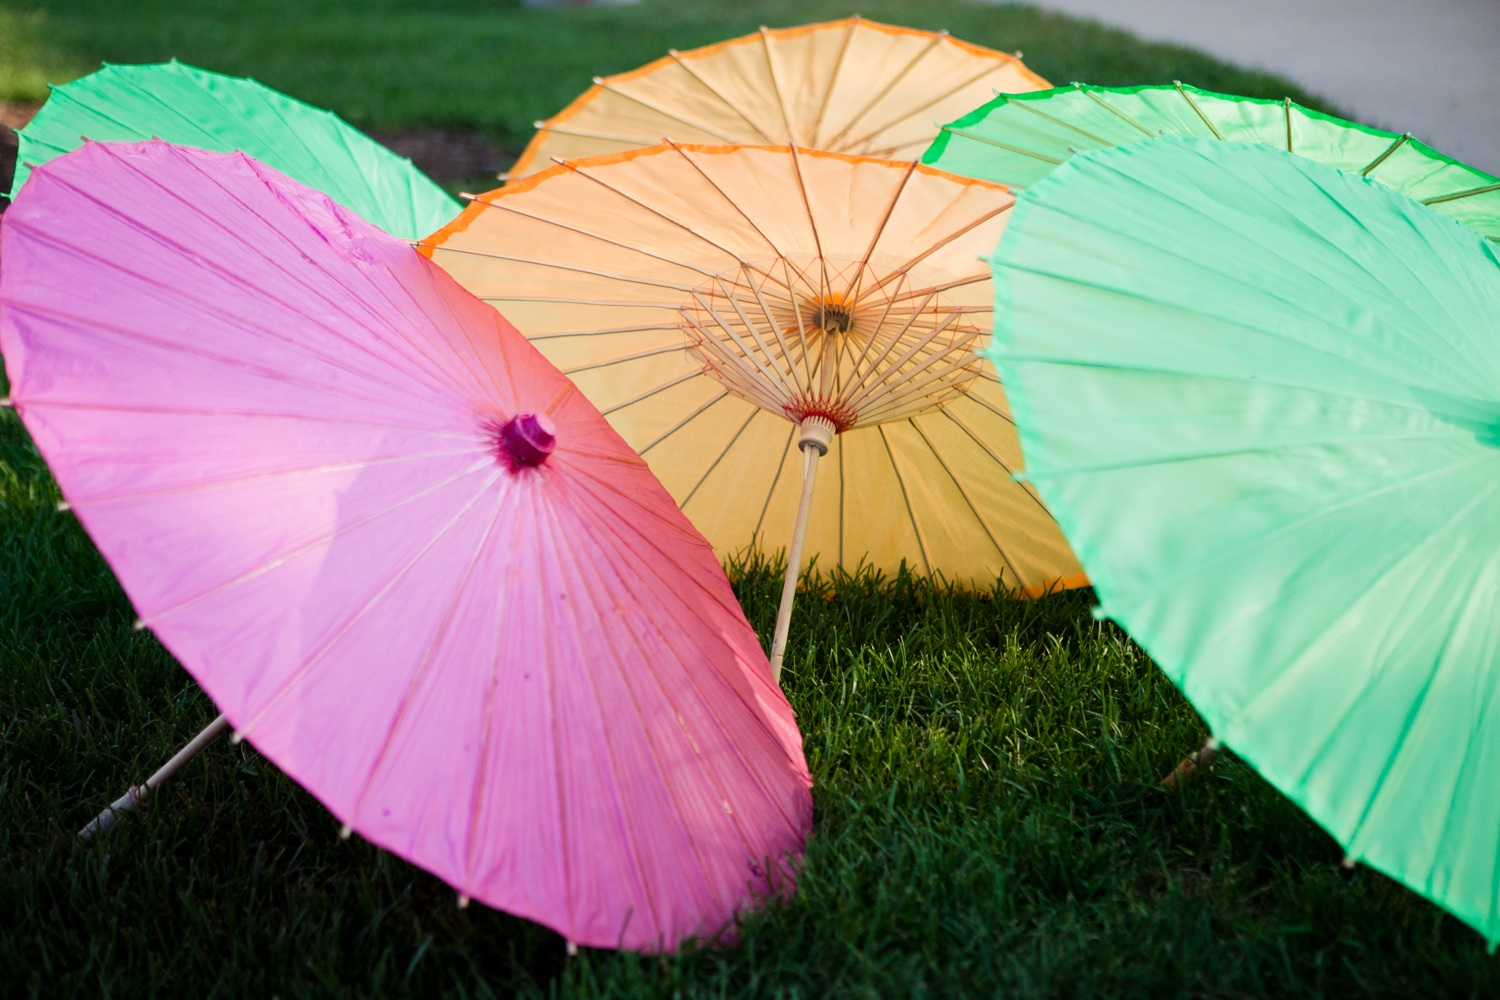 Real-weddings-new-york-wedding-photography-colorful-umbrellas-wedding-ceremony.original